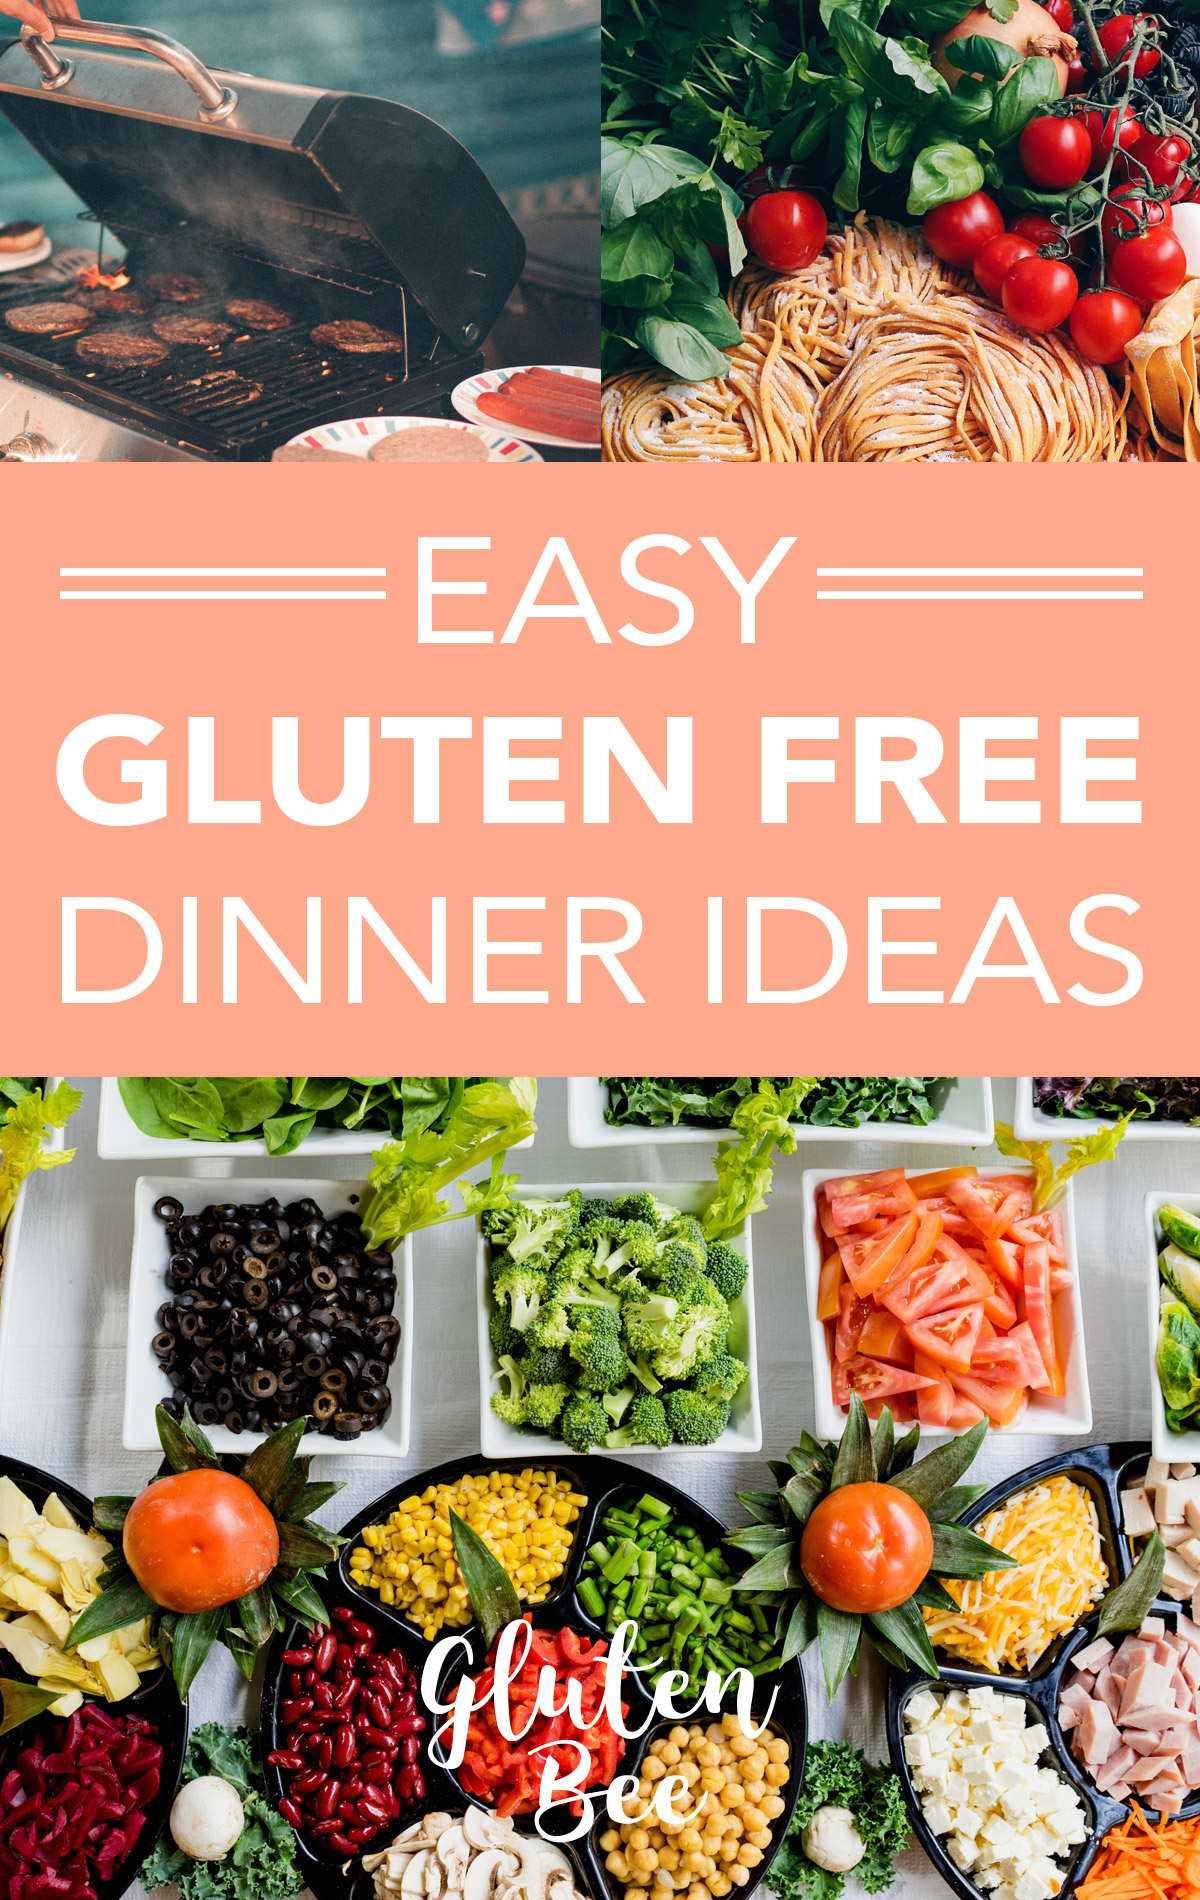 Easy Gluten Free Dinner Ideas for Busy People